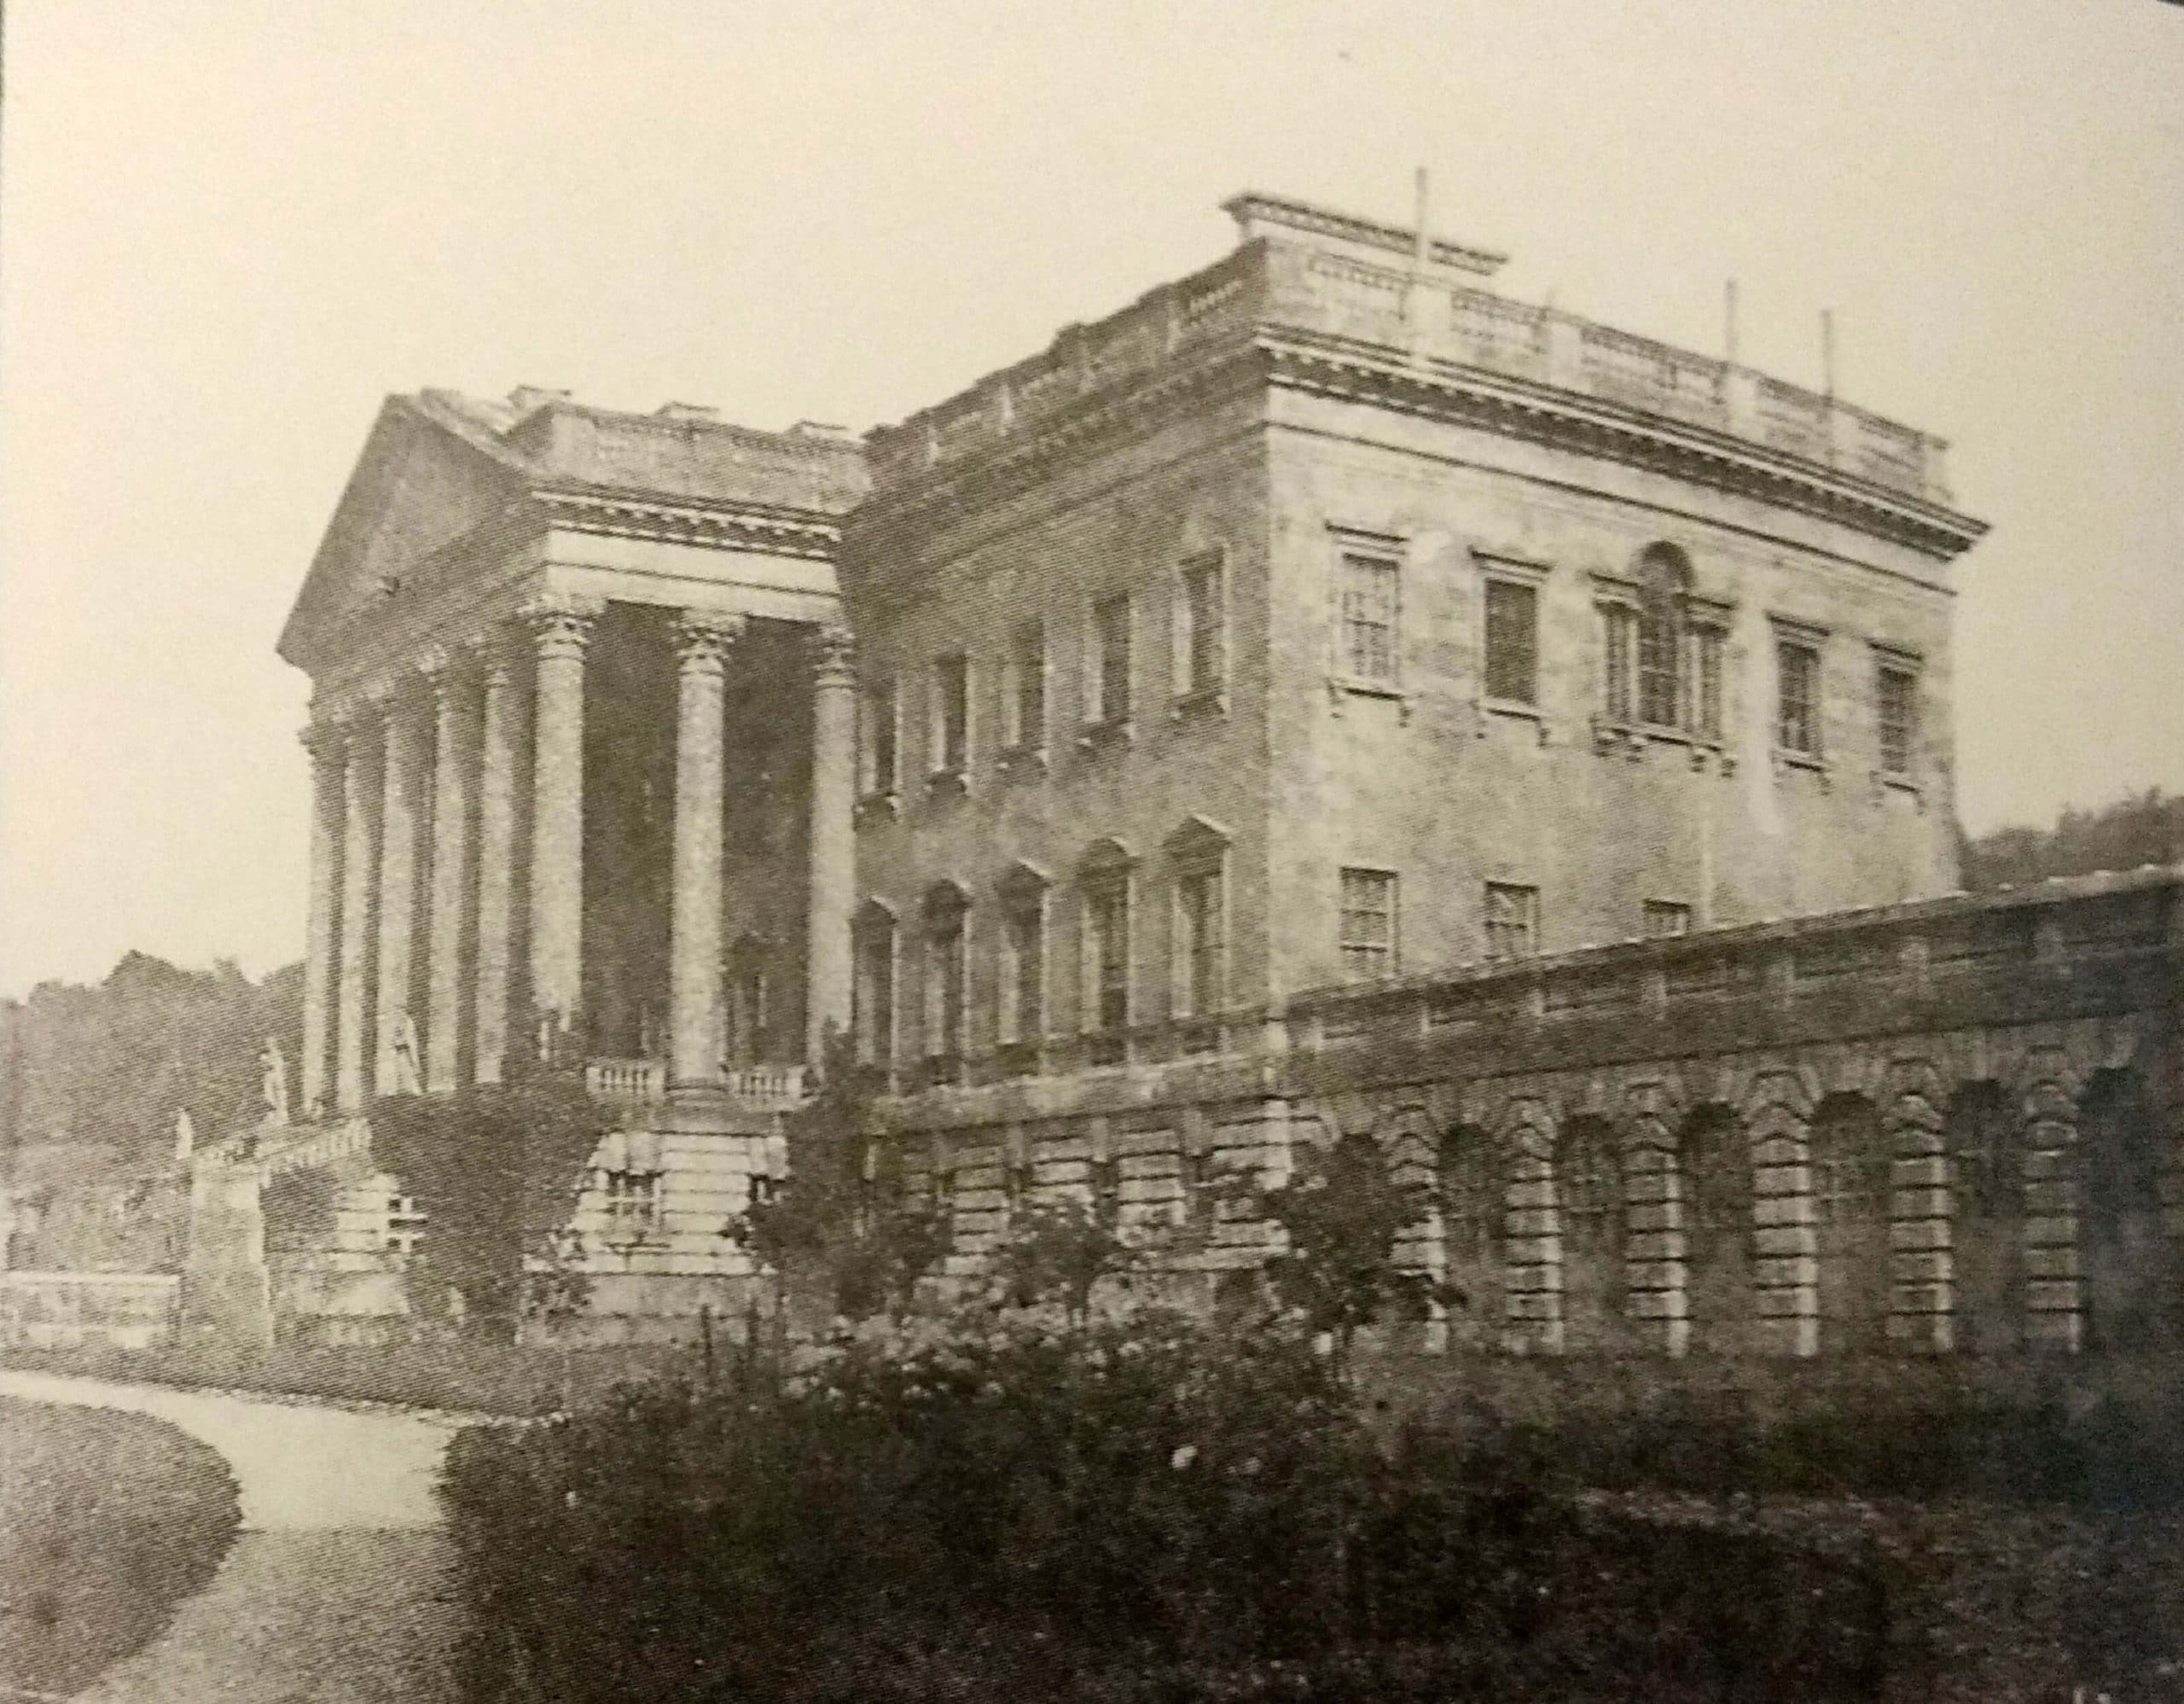 Prior Park mansion and portico in about 1855, Rev Francis Lockey (1796 - 1869)